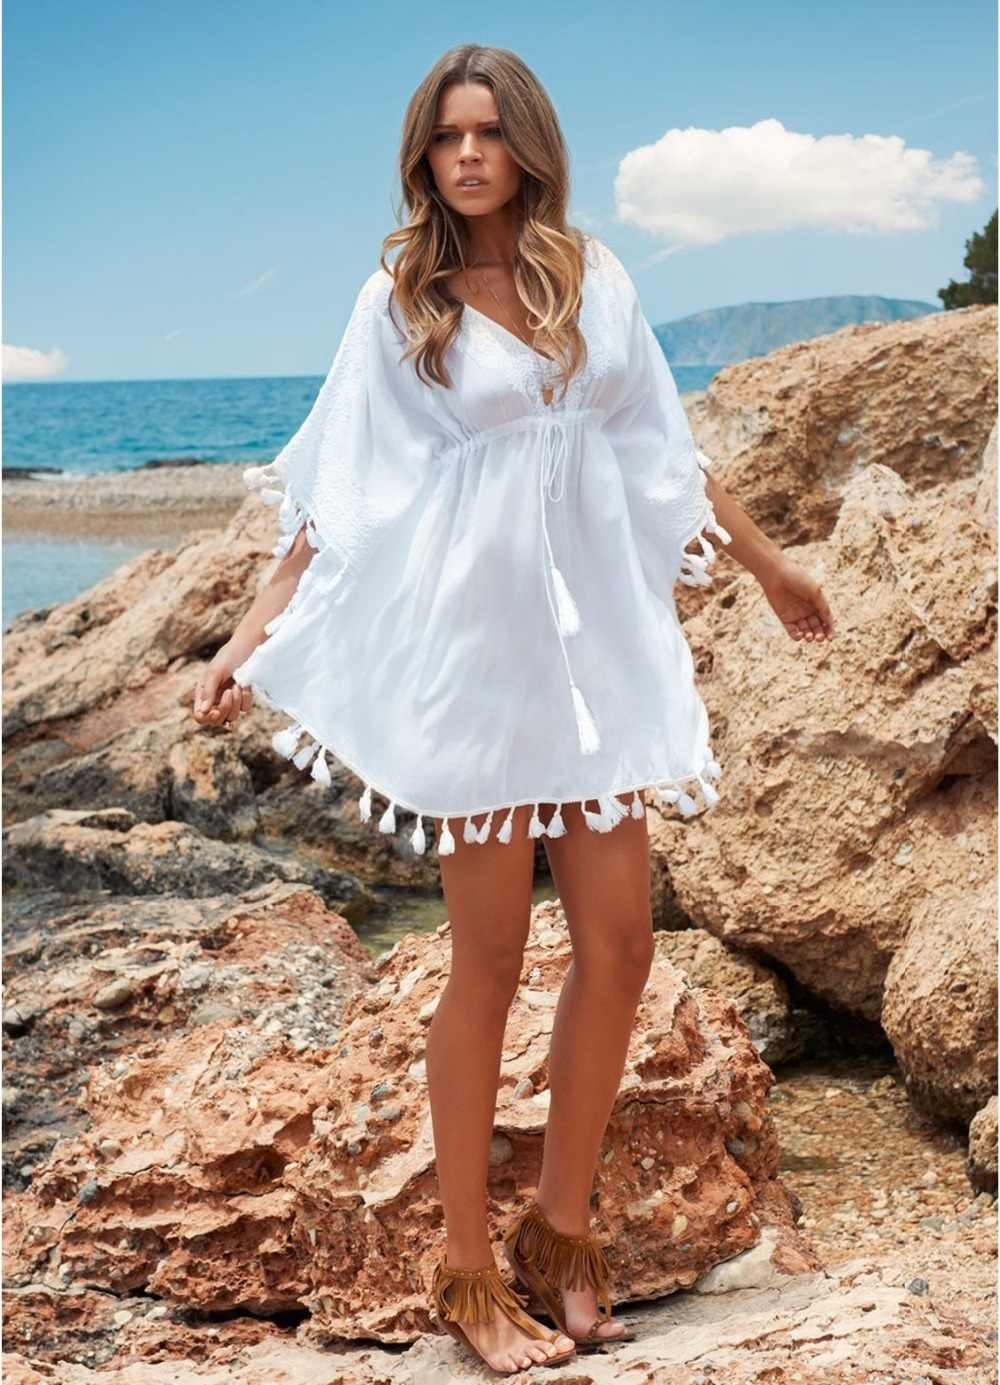 Women Sexy V Neck Beach Dress White Beach Dress Women Sexy White Bathing  Suit Outfit